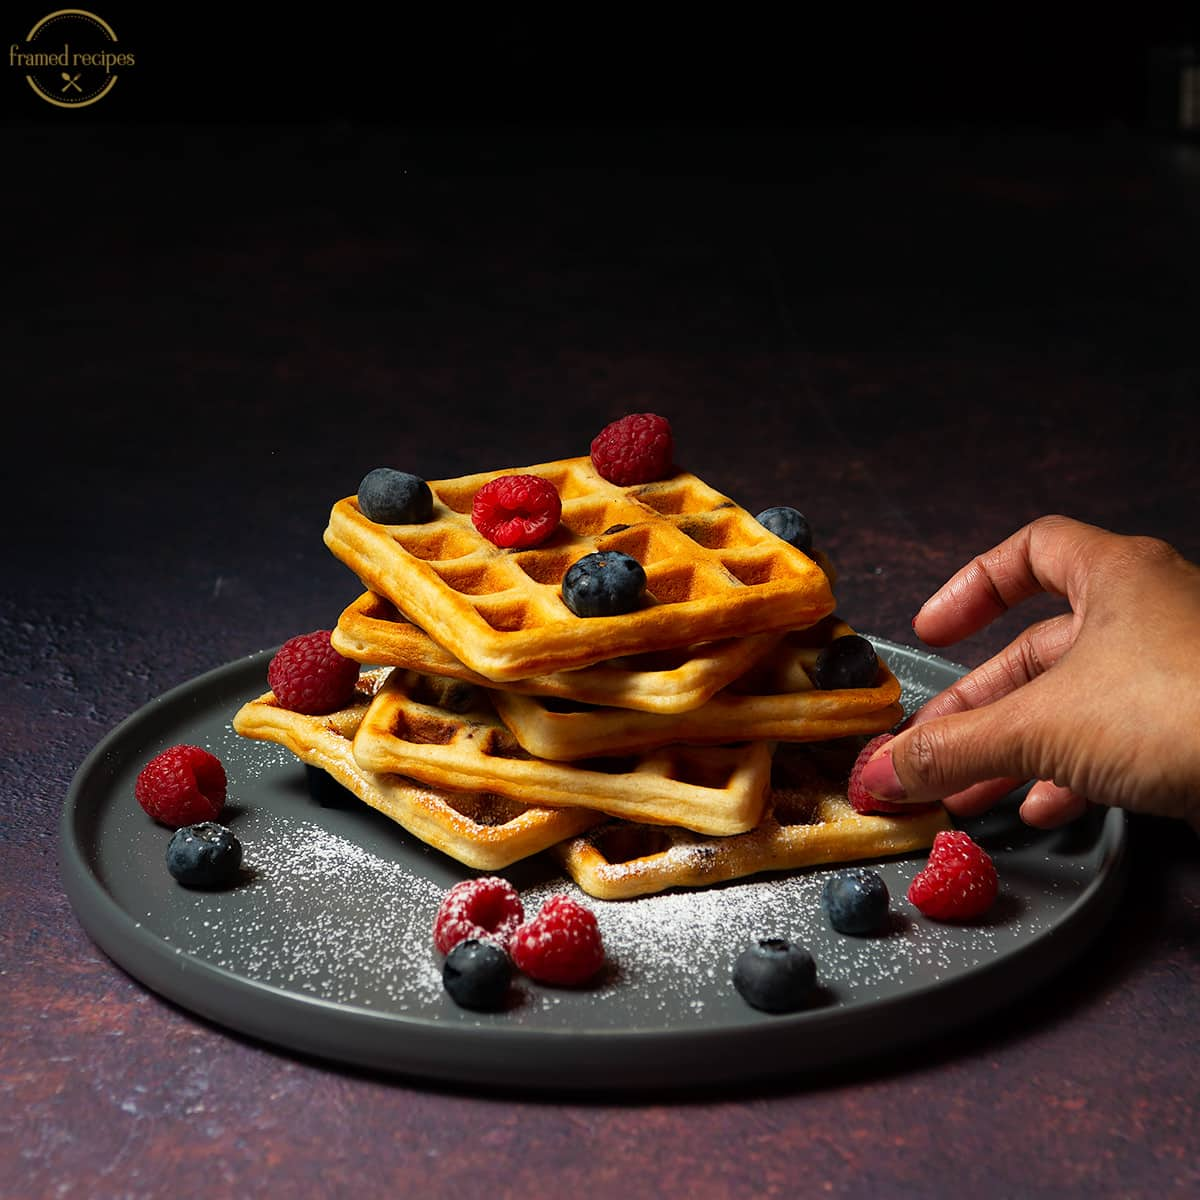 Yeasted_Oats_Waffles_MAPLE SYRUP_POURING_WITH_BERRIES